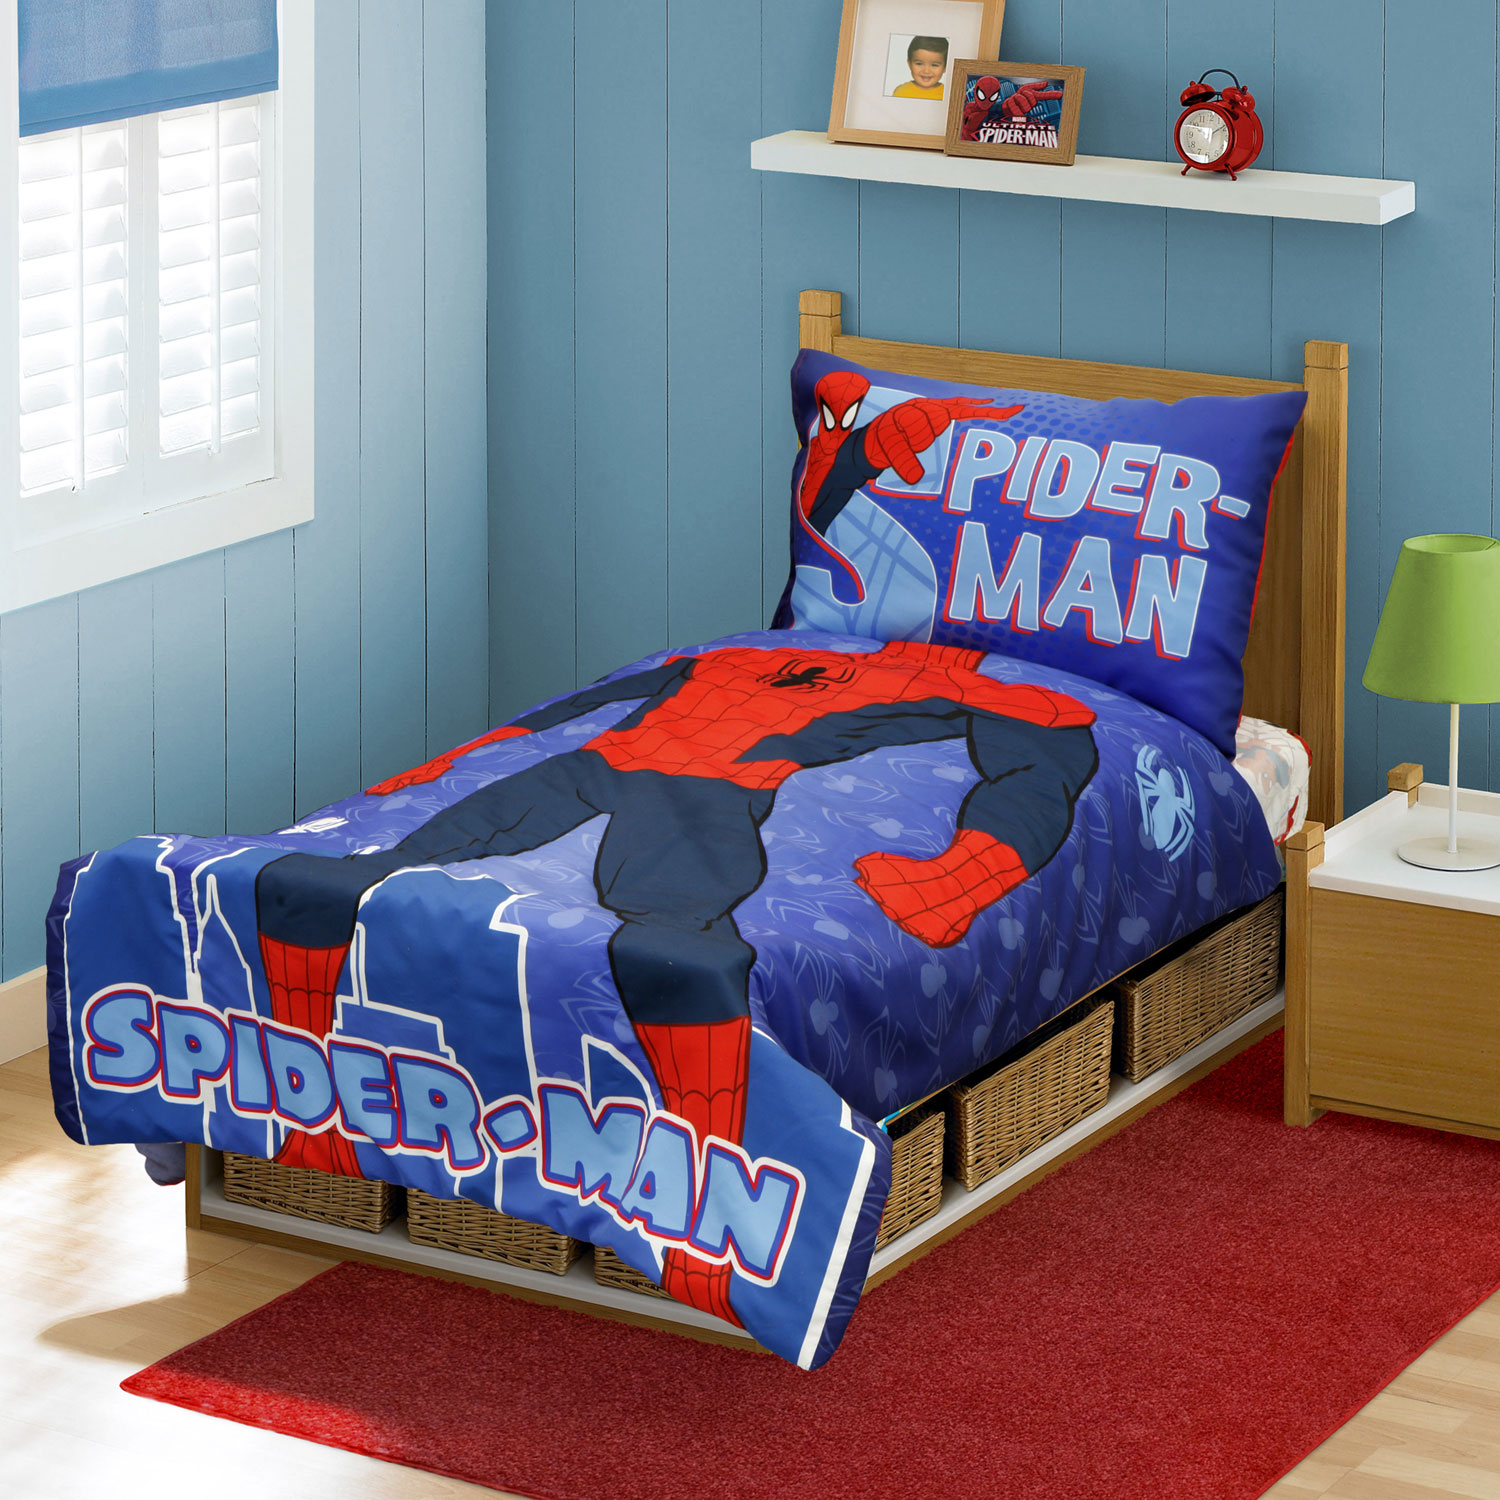 Marvel Spiderman Toddler Bedding Set - 4pc I Am Spider-Man Comforter and Sheets SMD11489